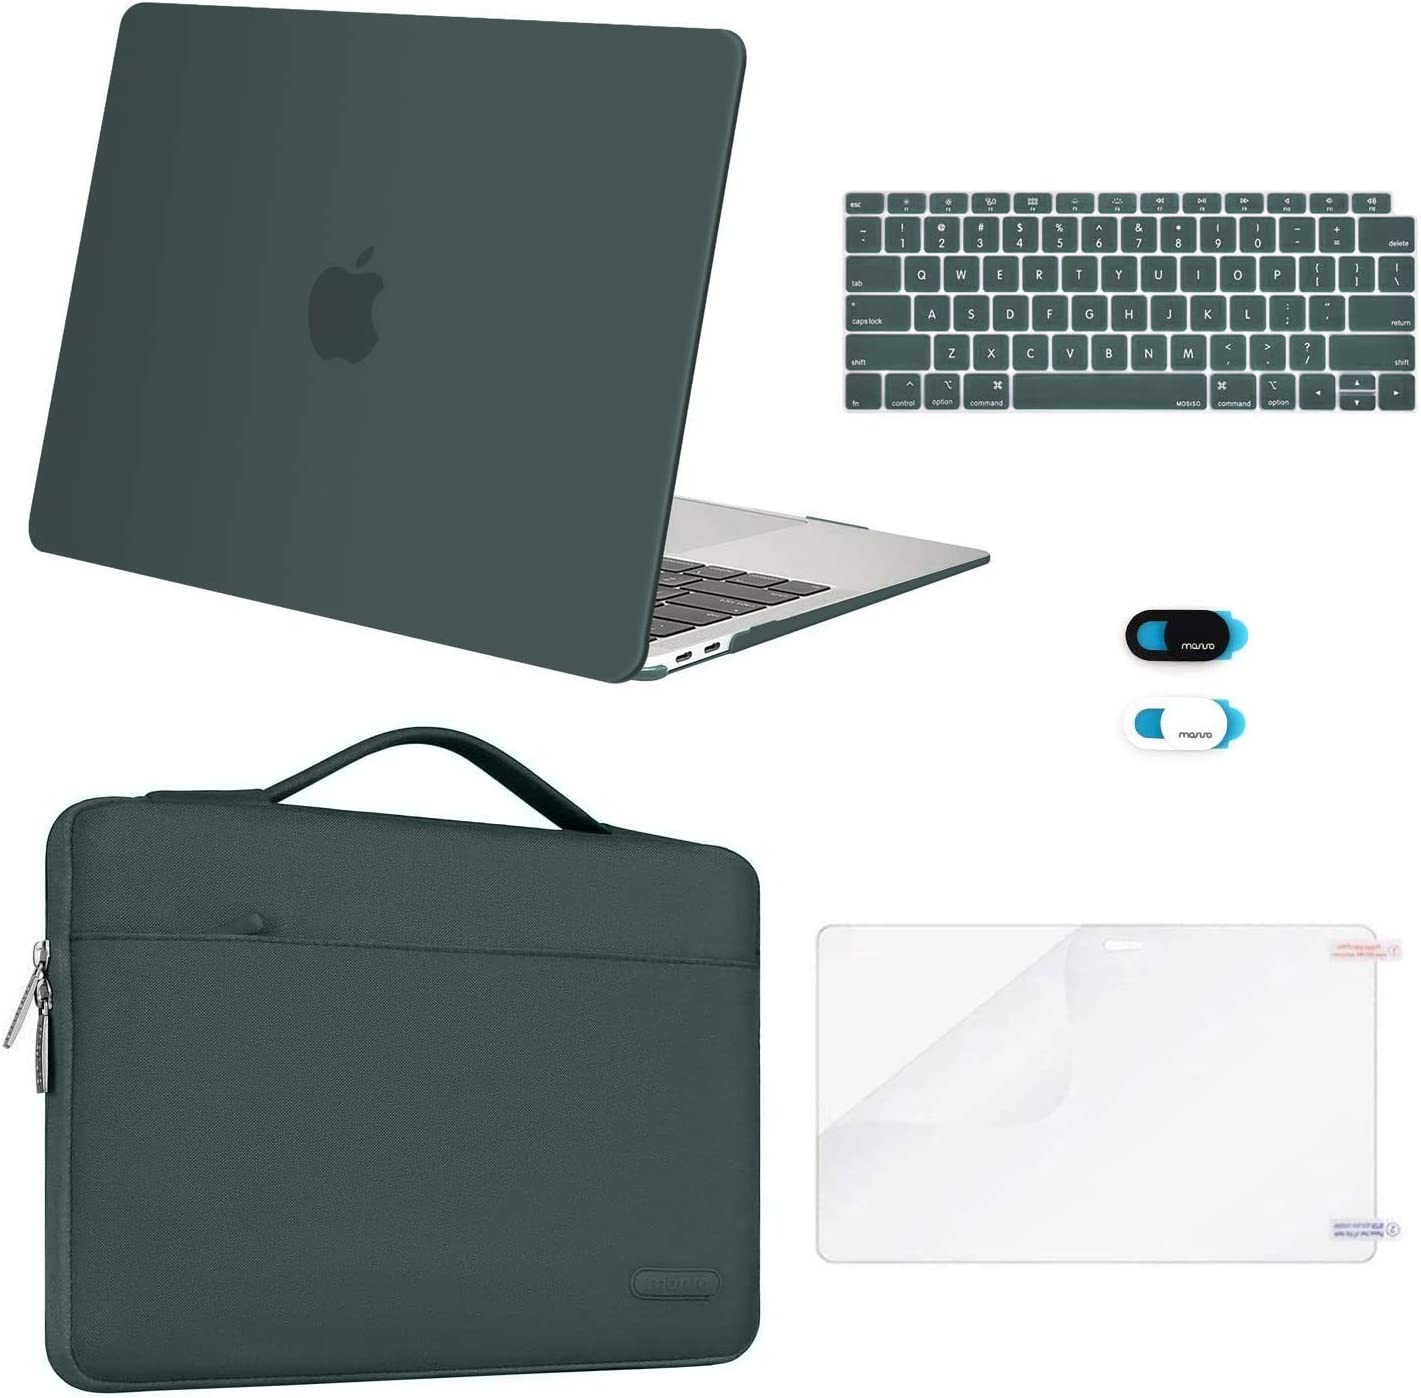 MOSISO MacBook Air 13 inch Case 2020 2019 2018 Release A2179 A1932, Plastic Hard Shell&Sleeve Bag&Keyboard Cover&Webcam Cover&Screen Protector Compatible with MacBook Air 13 inch Retina,Midnight Green